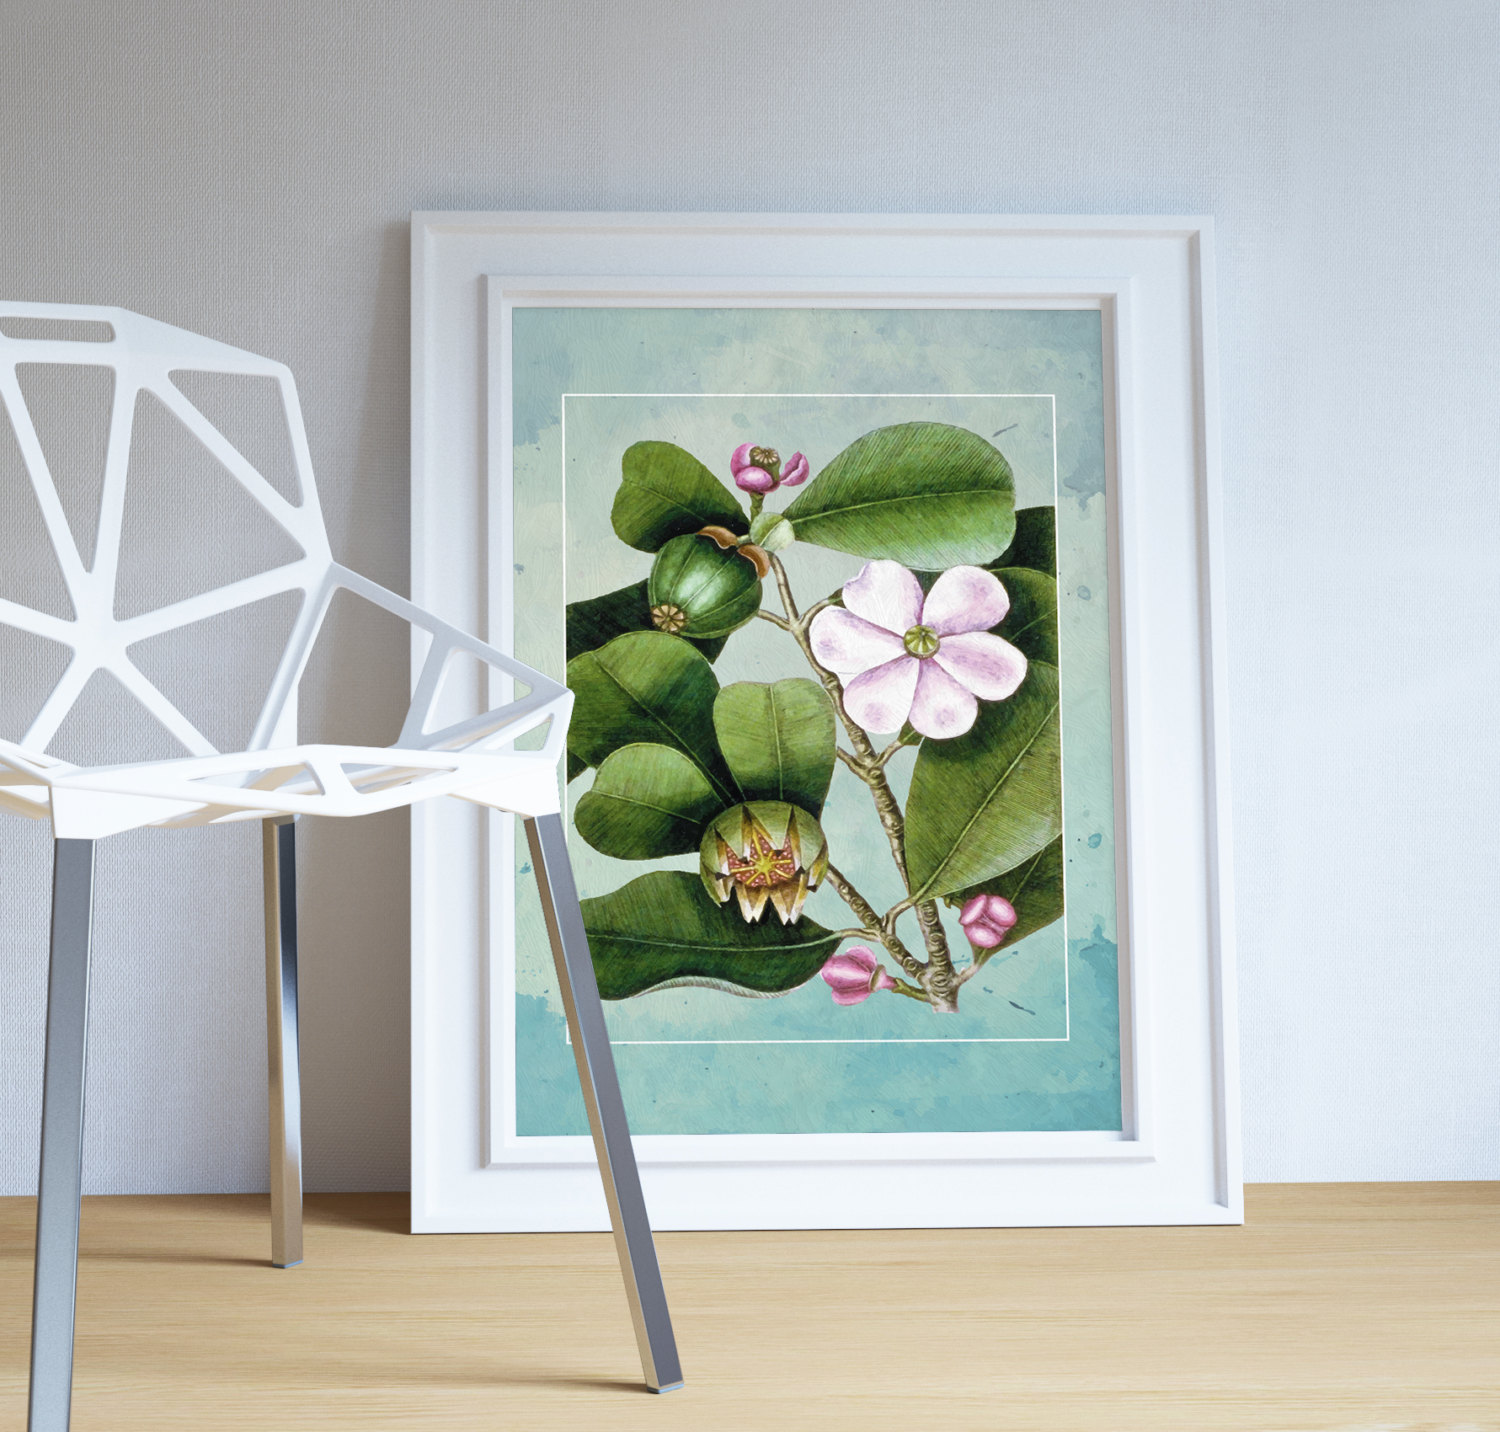 magnolia-catesby-flowering-tree-decor-magnolia-art-botanical- : magnolia wall art - www.pureclipart.com